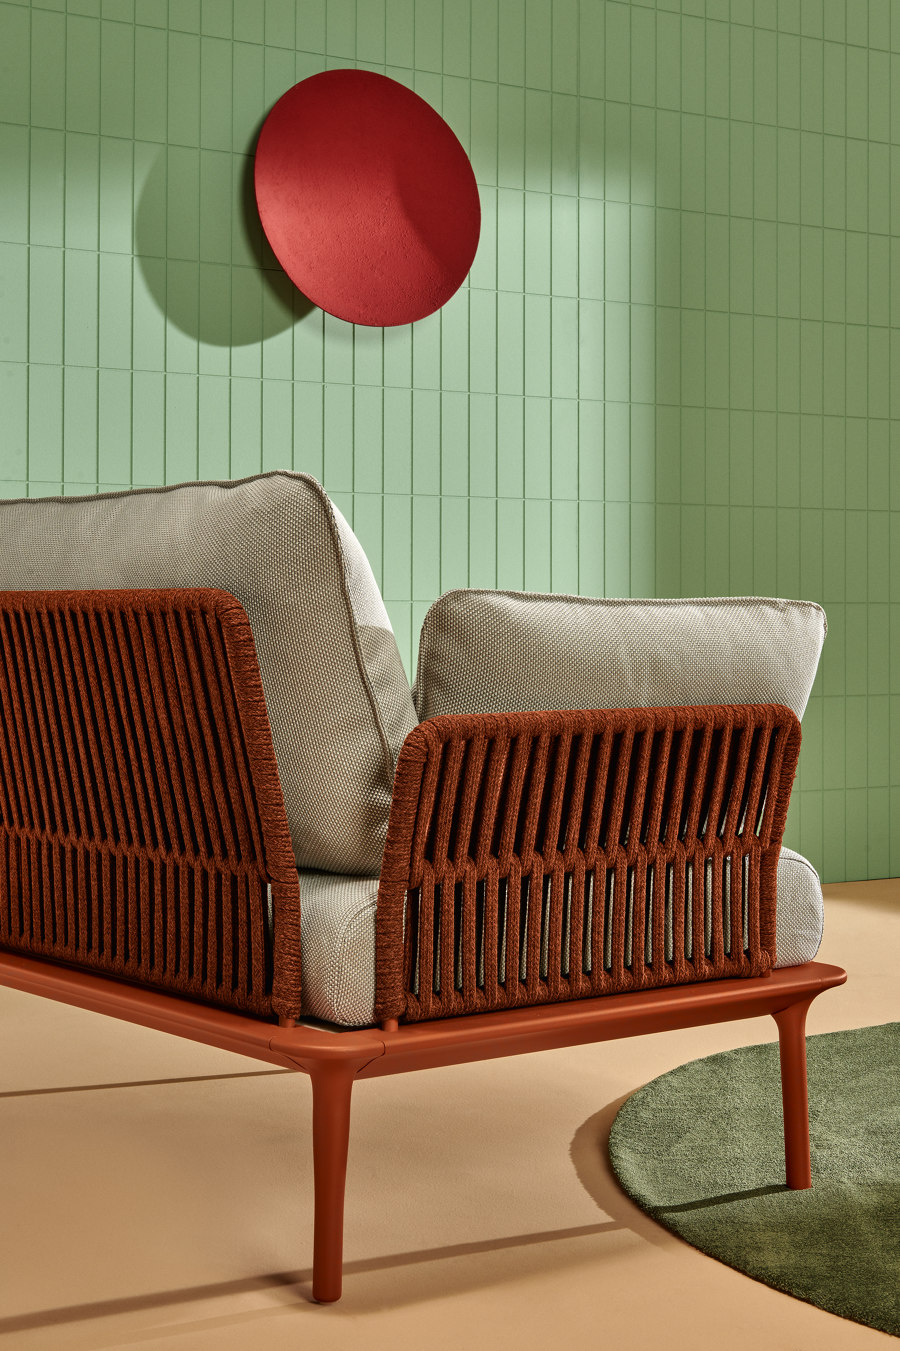 It's elementary: new outdoor furniture from Pedrali | News